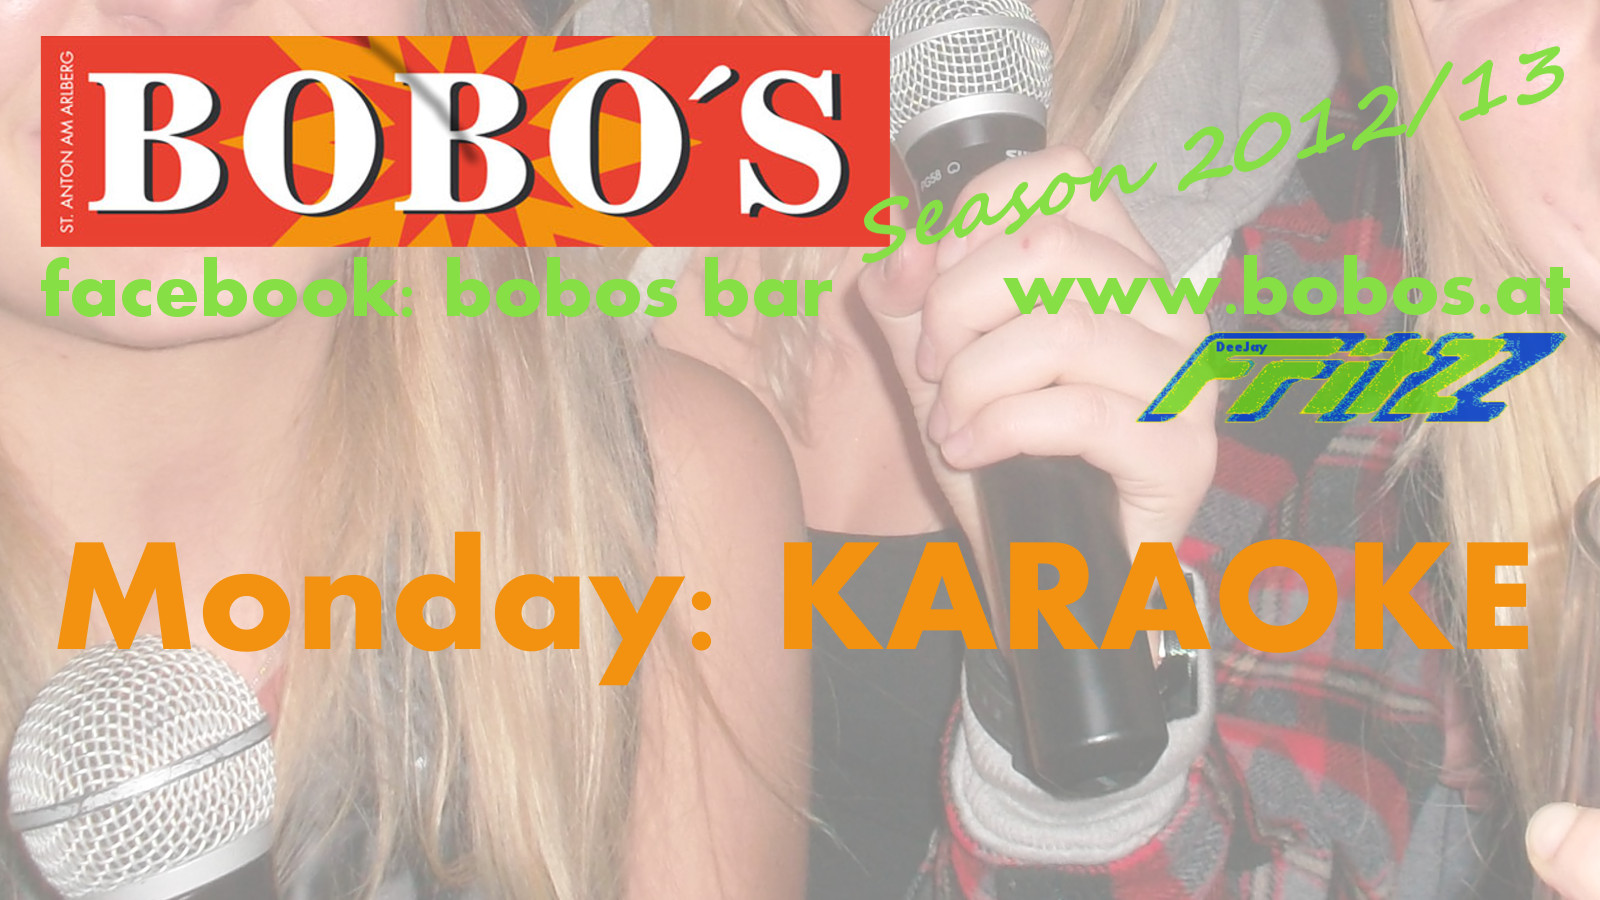 screen-bobos-karaoke-02